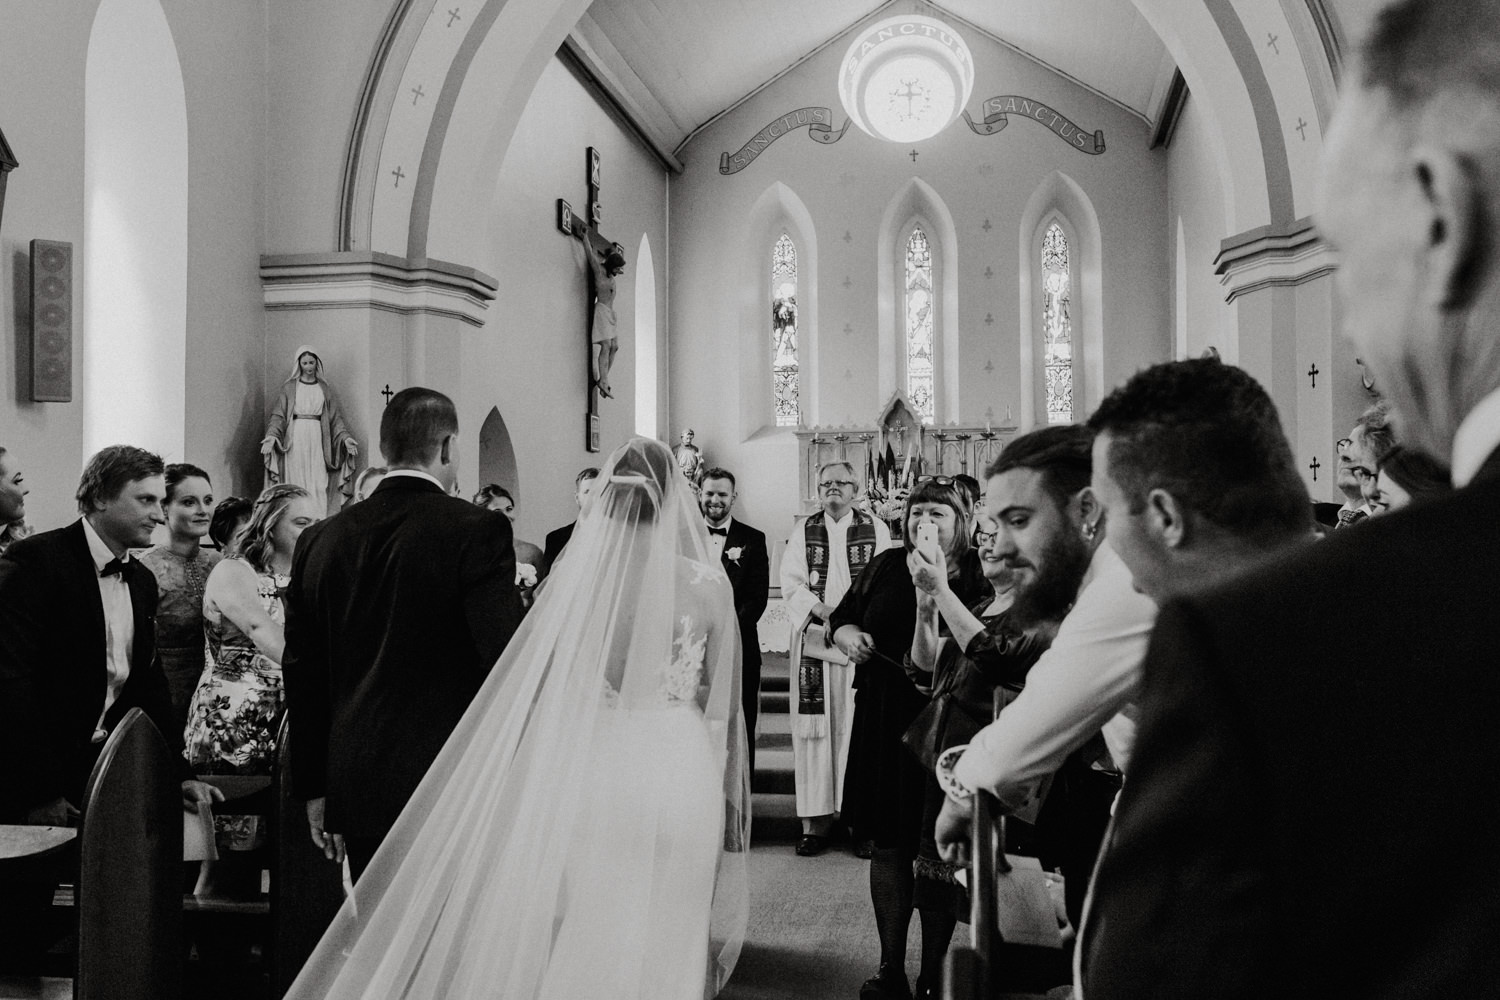 Fitters' Workshop Wedding Canberra, St Gregory's Church- photography by Jenny Wu Straight No Chaser Photography